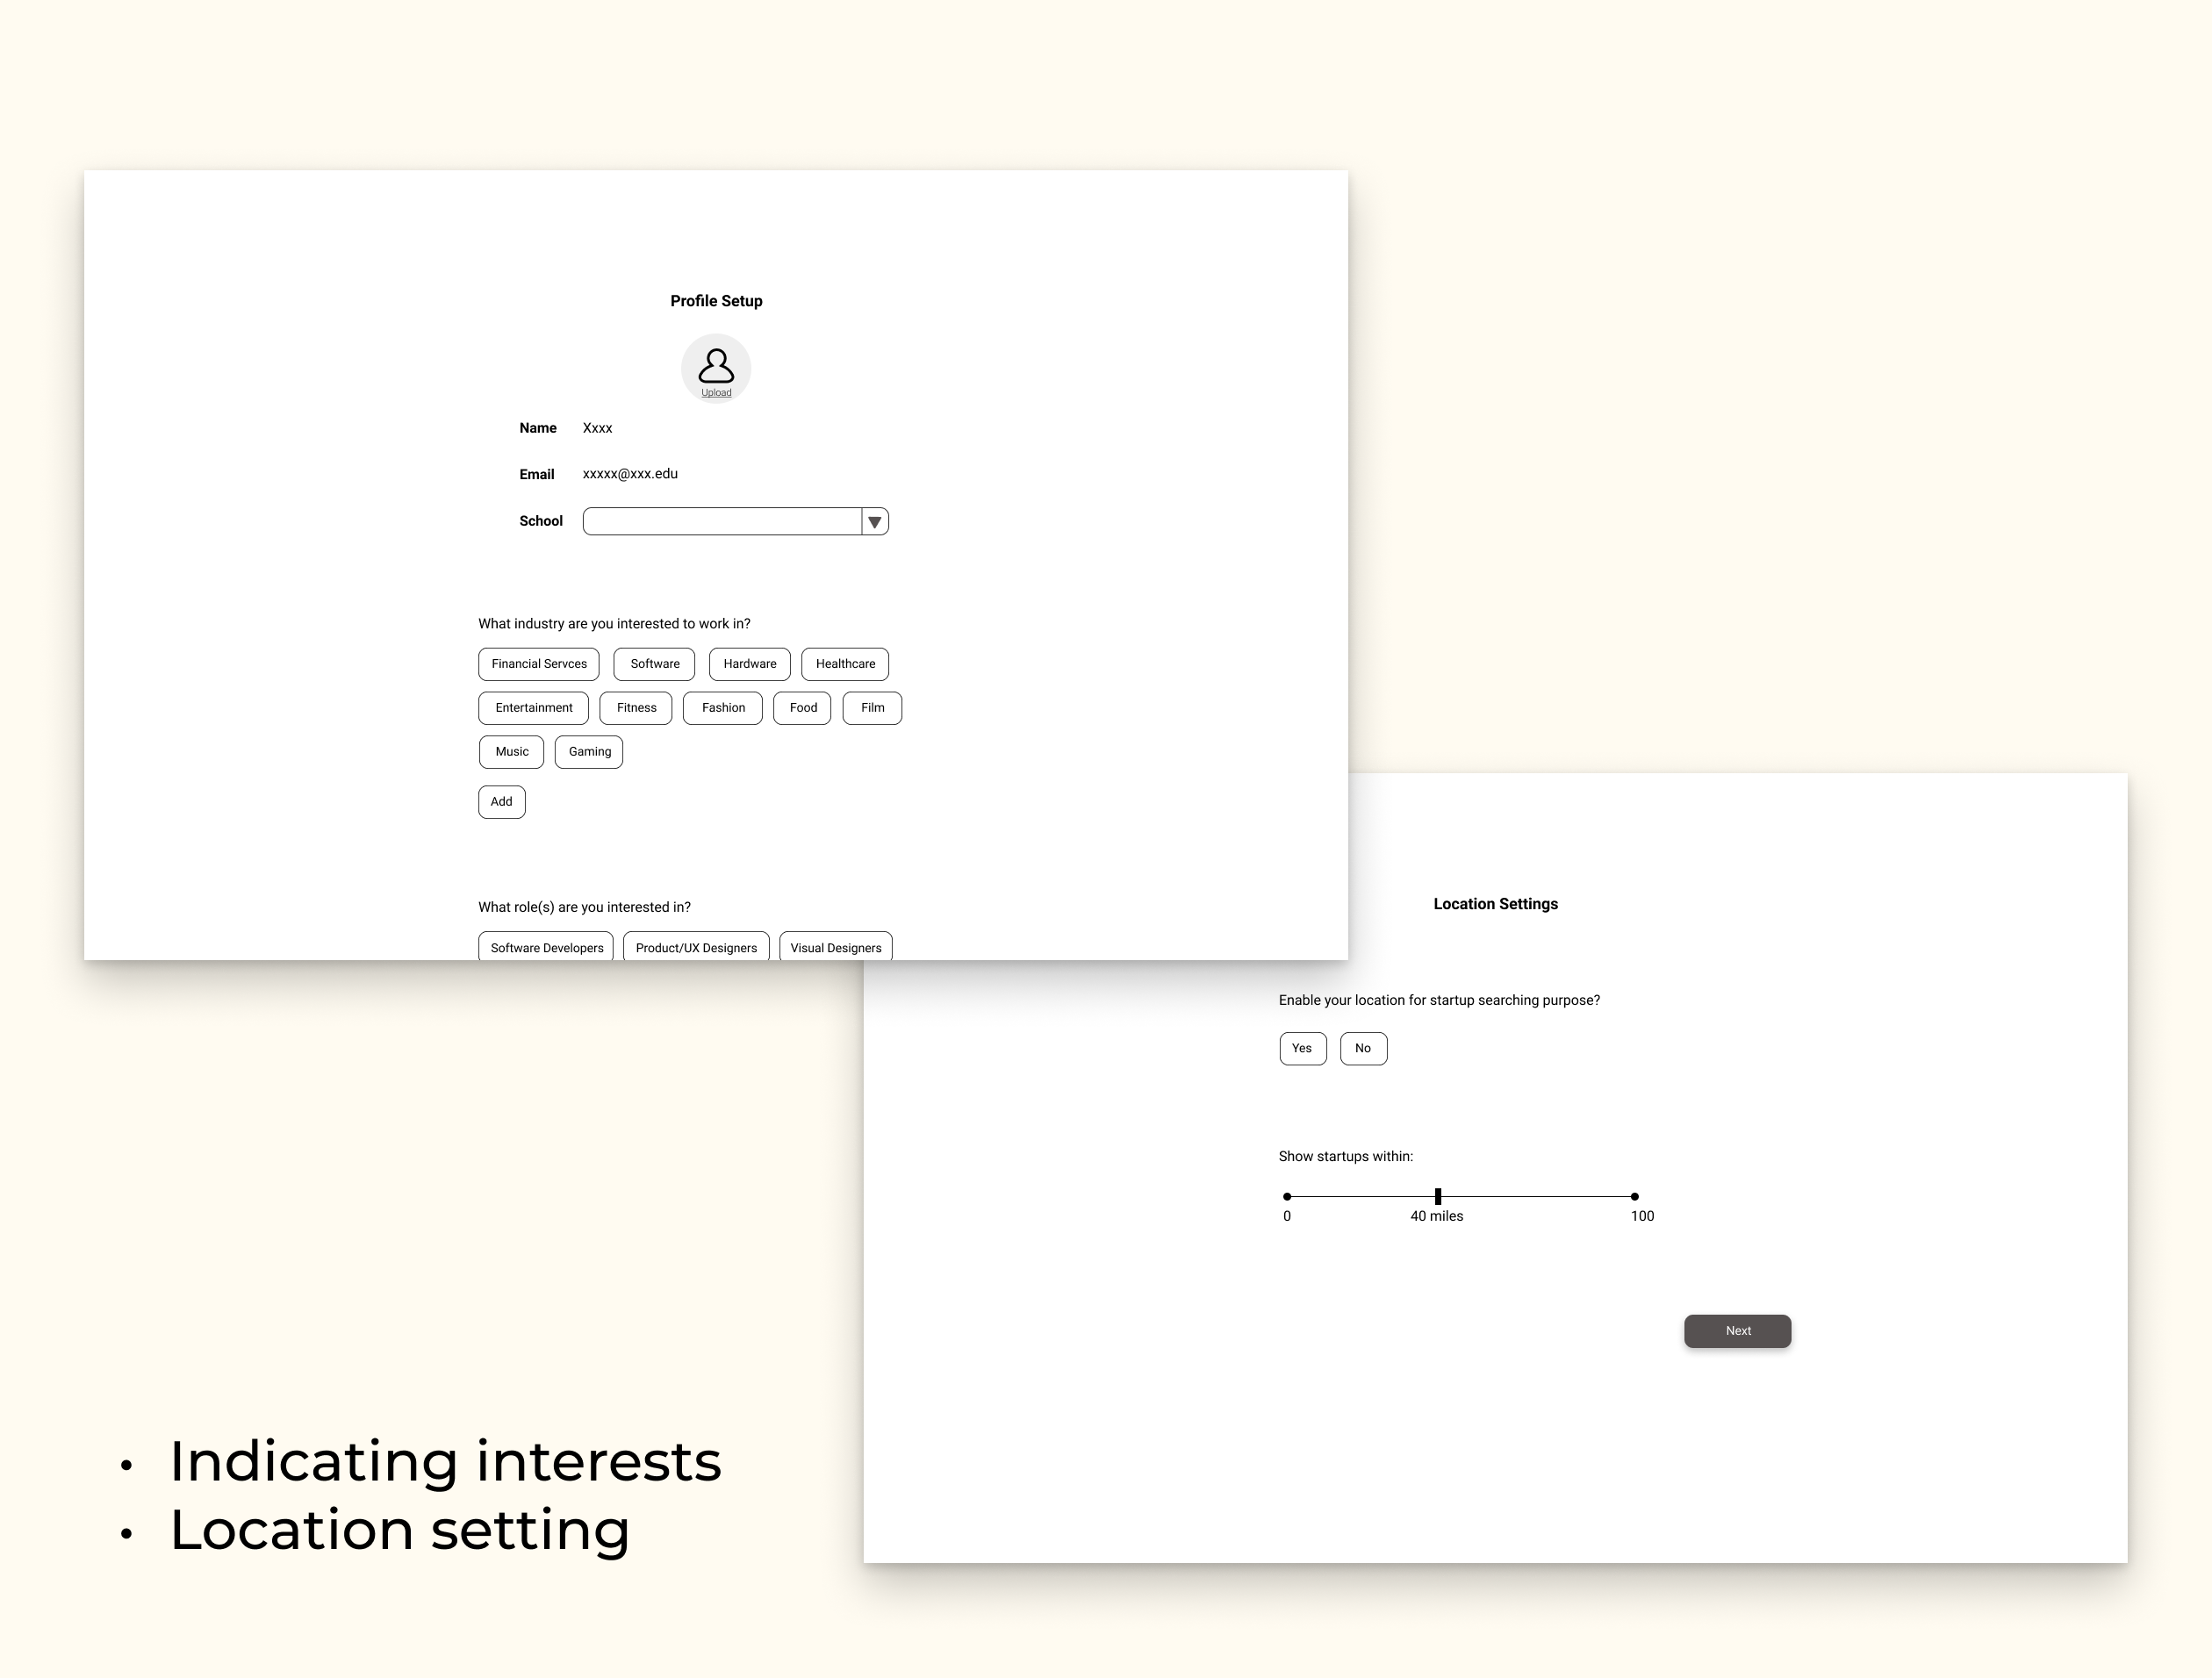 Medium-fidelity mockups of onboarding where interests and location is gathered.